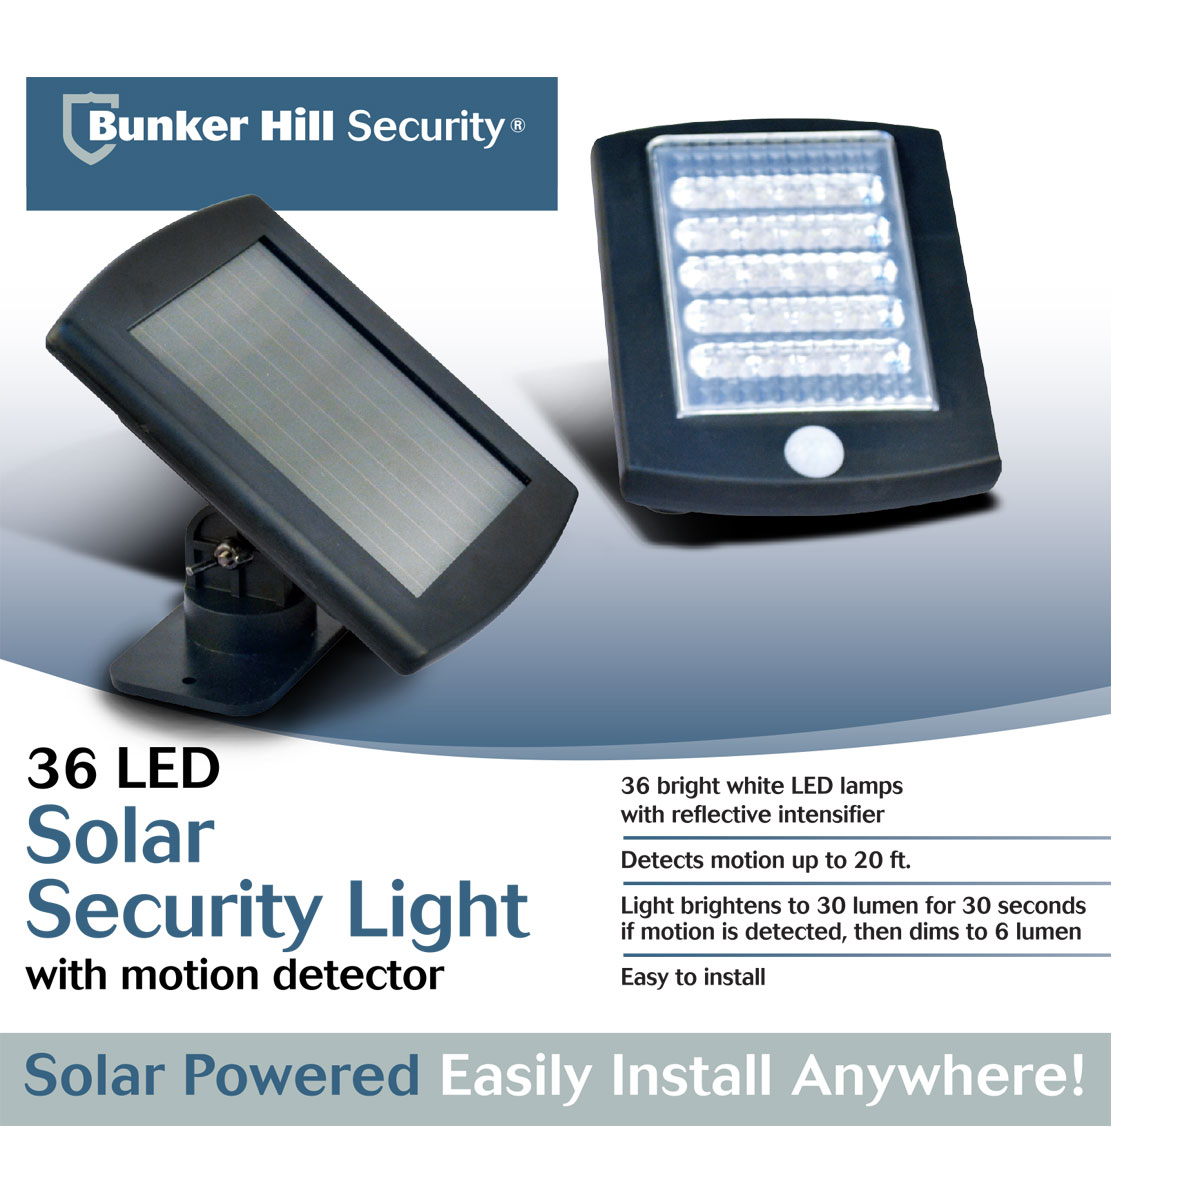 Led Security Light Save On This 36 Led Security Light